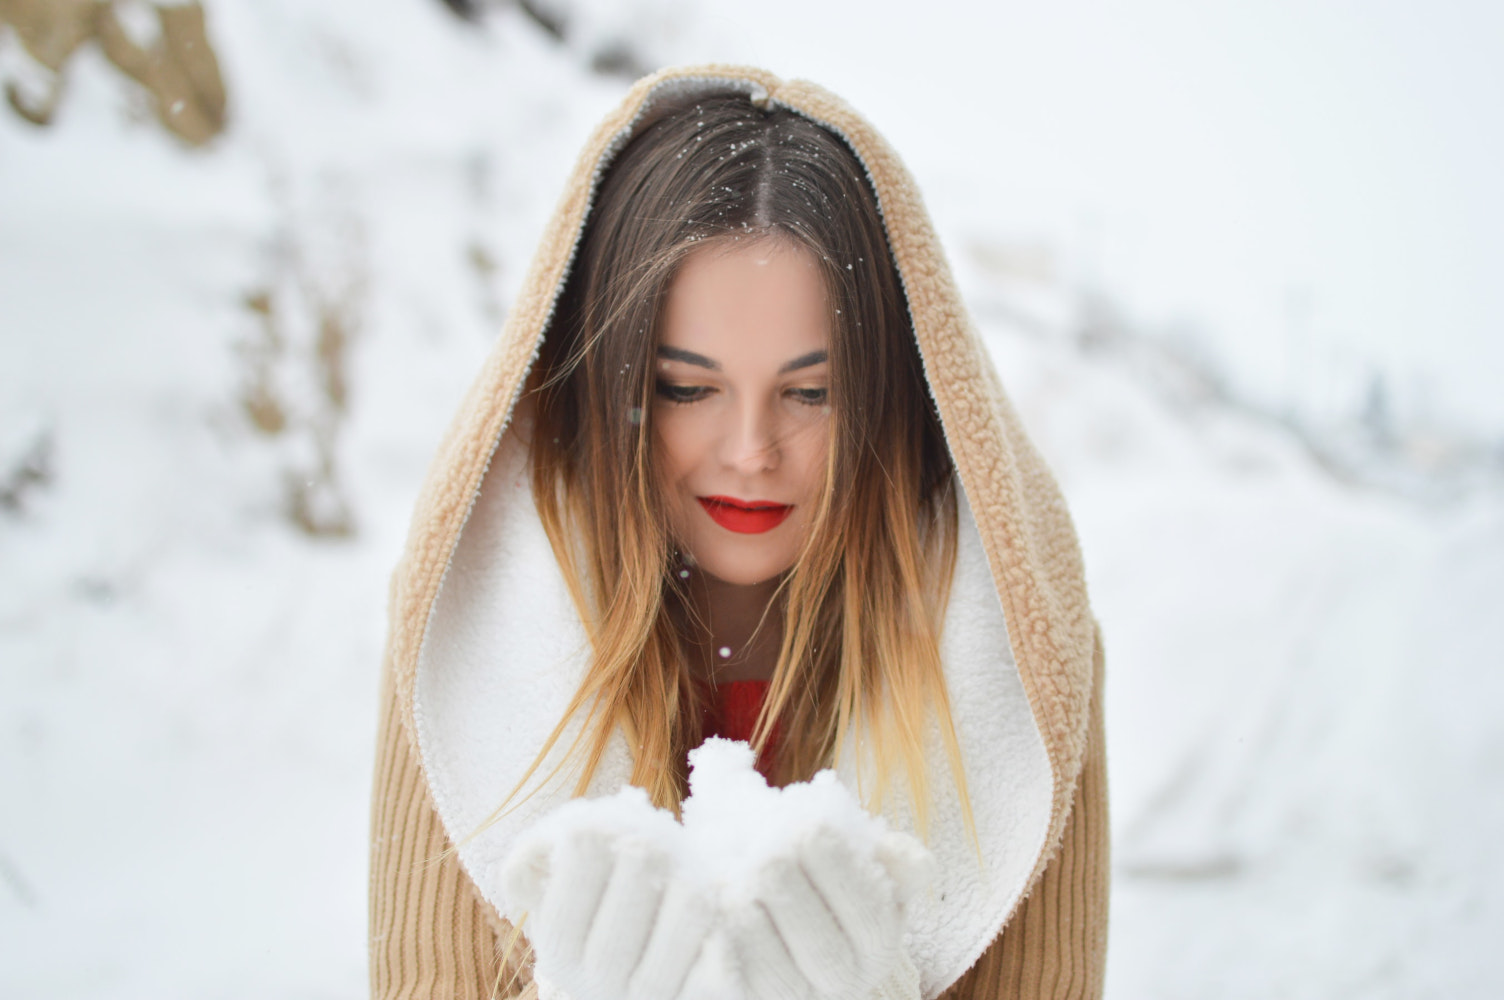 beautiful woman and snow